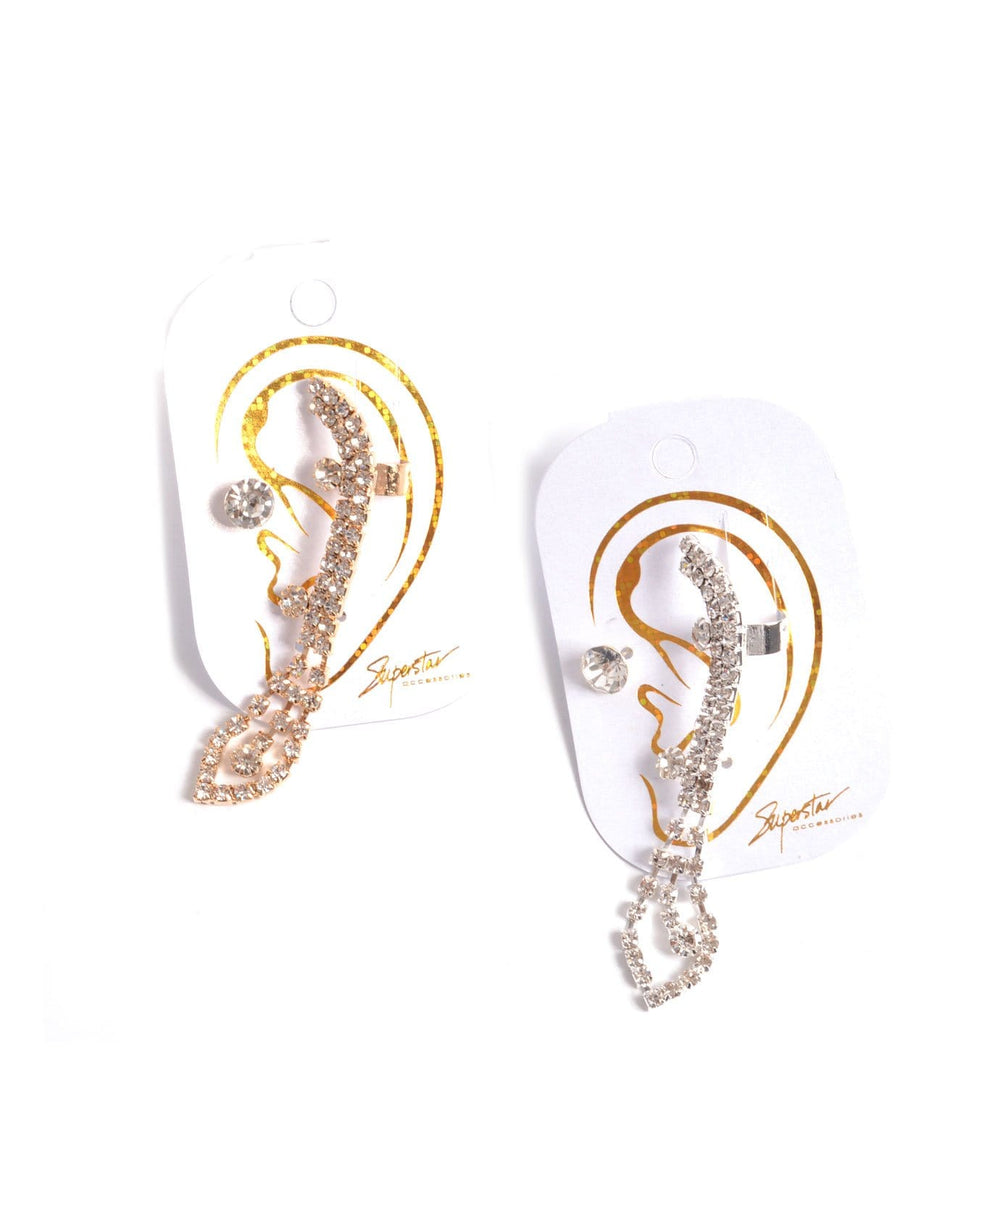 Andromeda Ear Cuff, JEWELRY